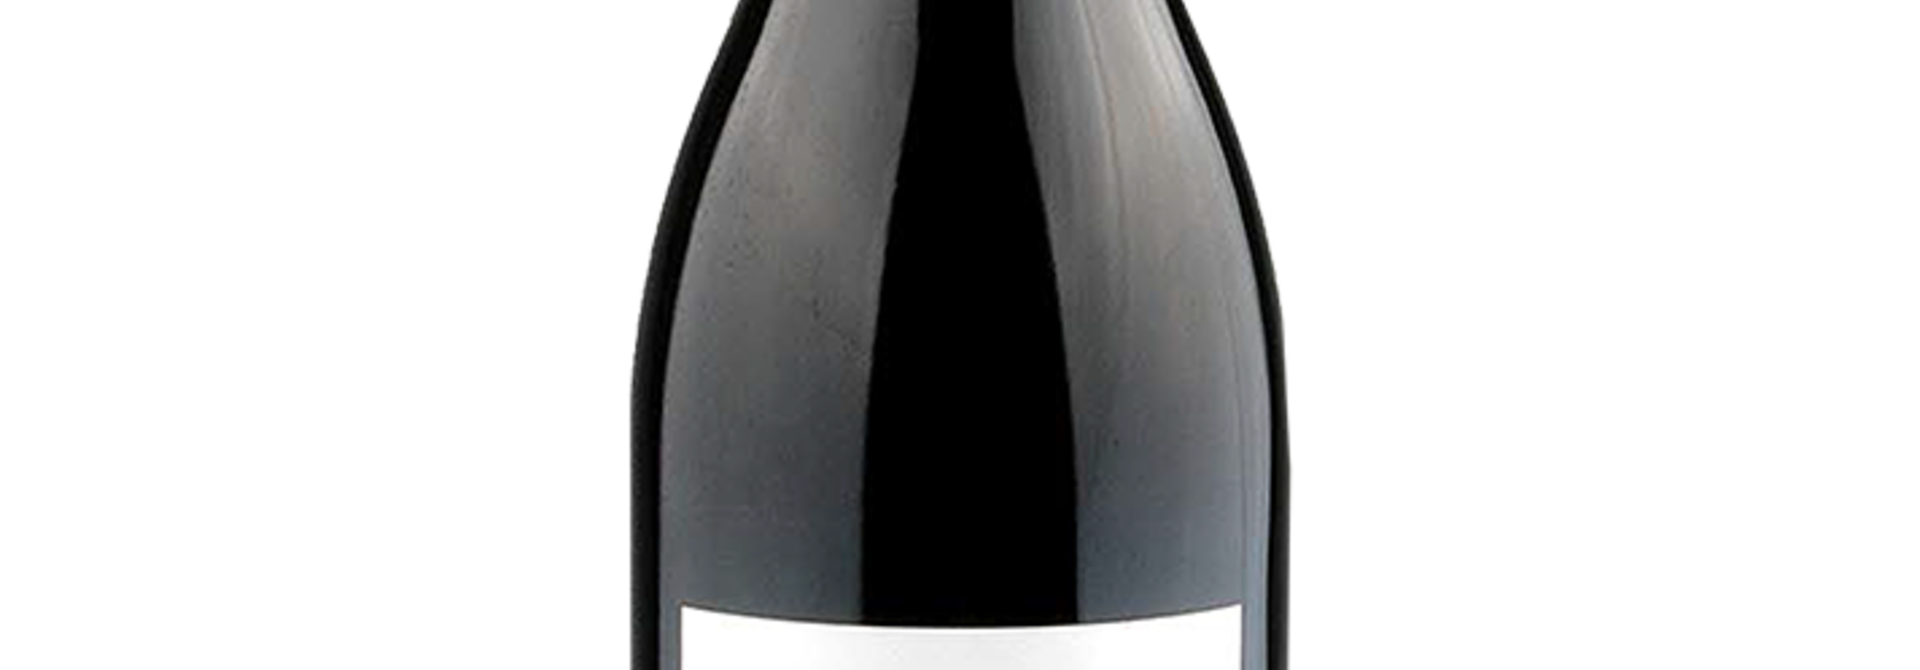 Bishop's Leap Pinot Noir